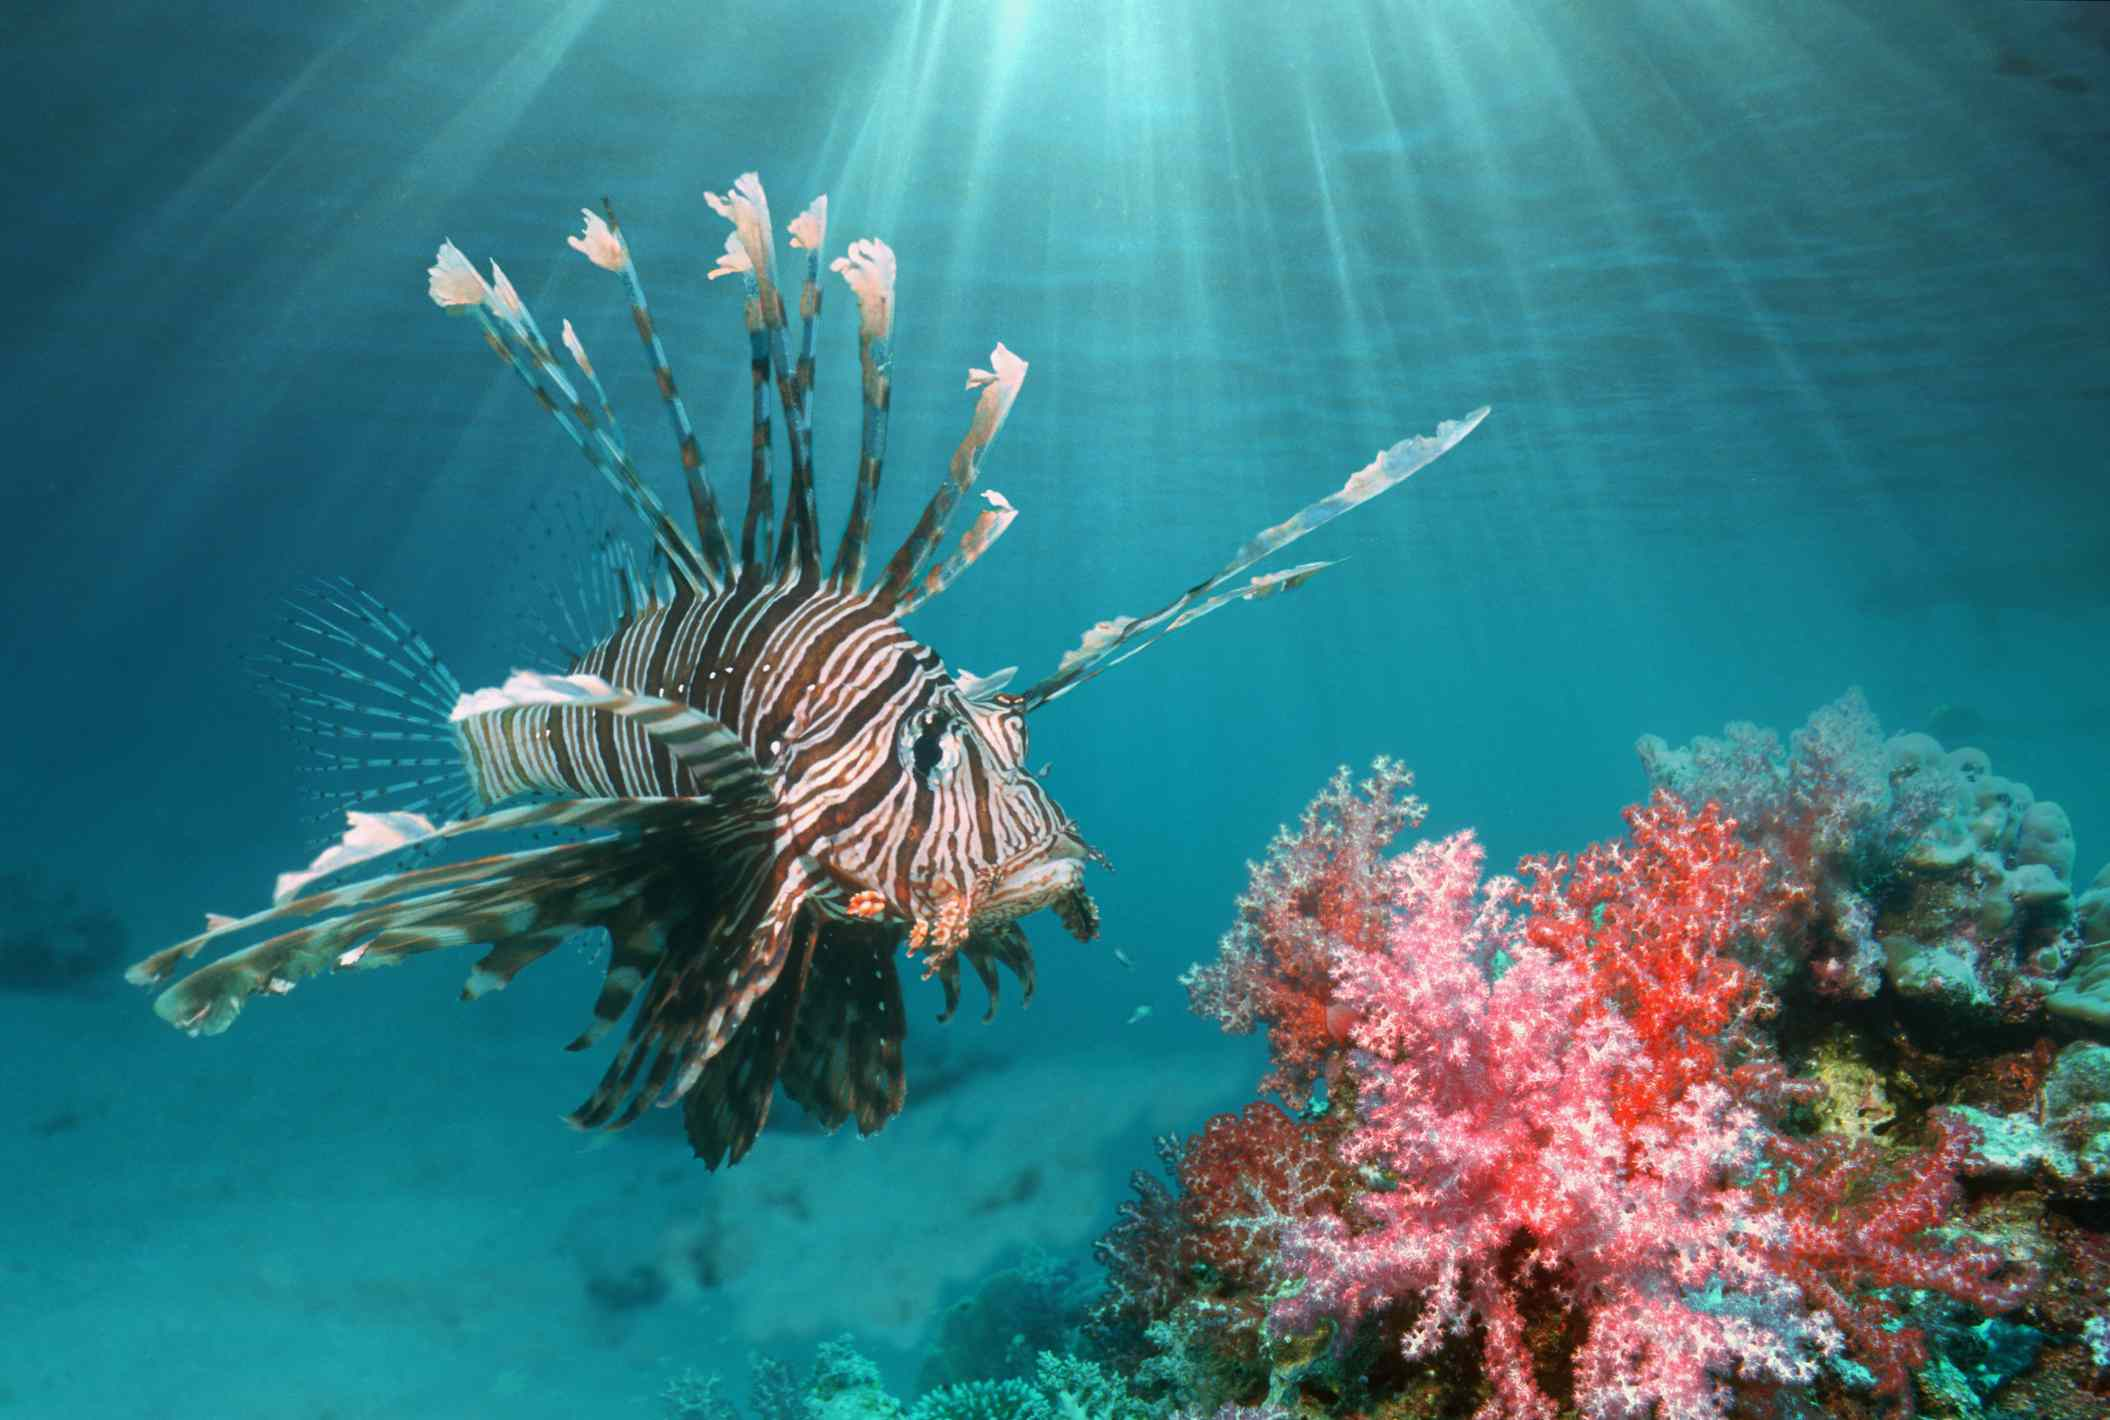 A lionfish swimming among pink and red corals